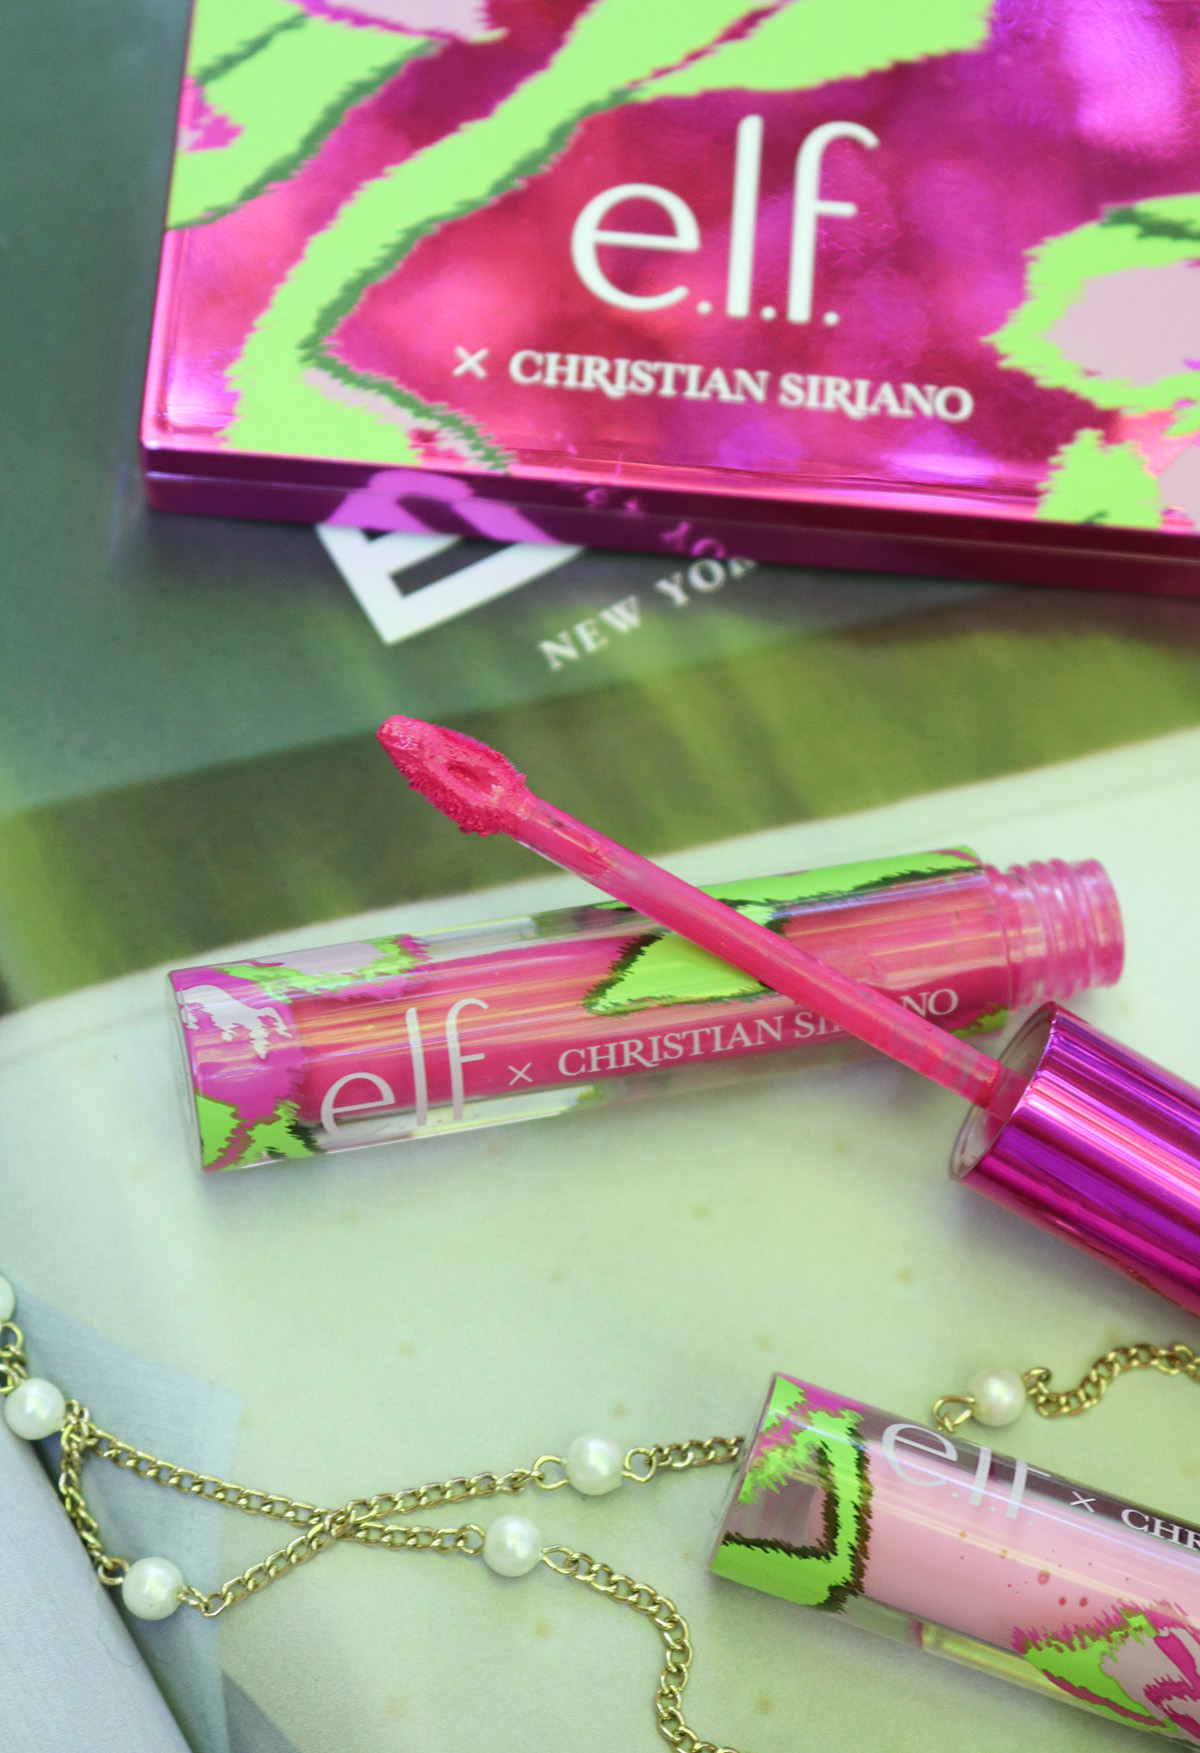 Elf Christian Siriano Makeup Collection Review I DreaminLace.com #CrueltyFree #DrugstoreMakeup #Makeup #CrueltyFreeBeauty #ChristianSiriano